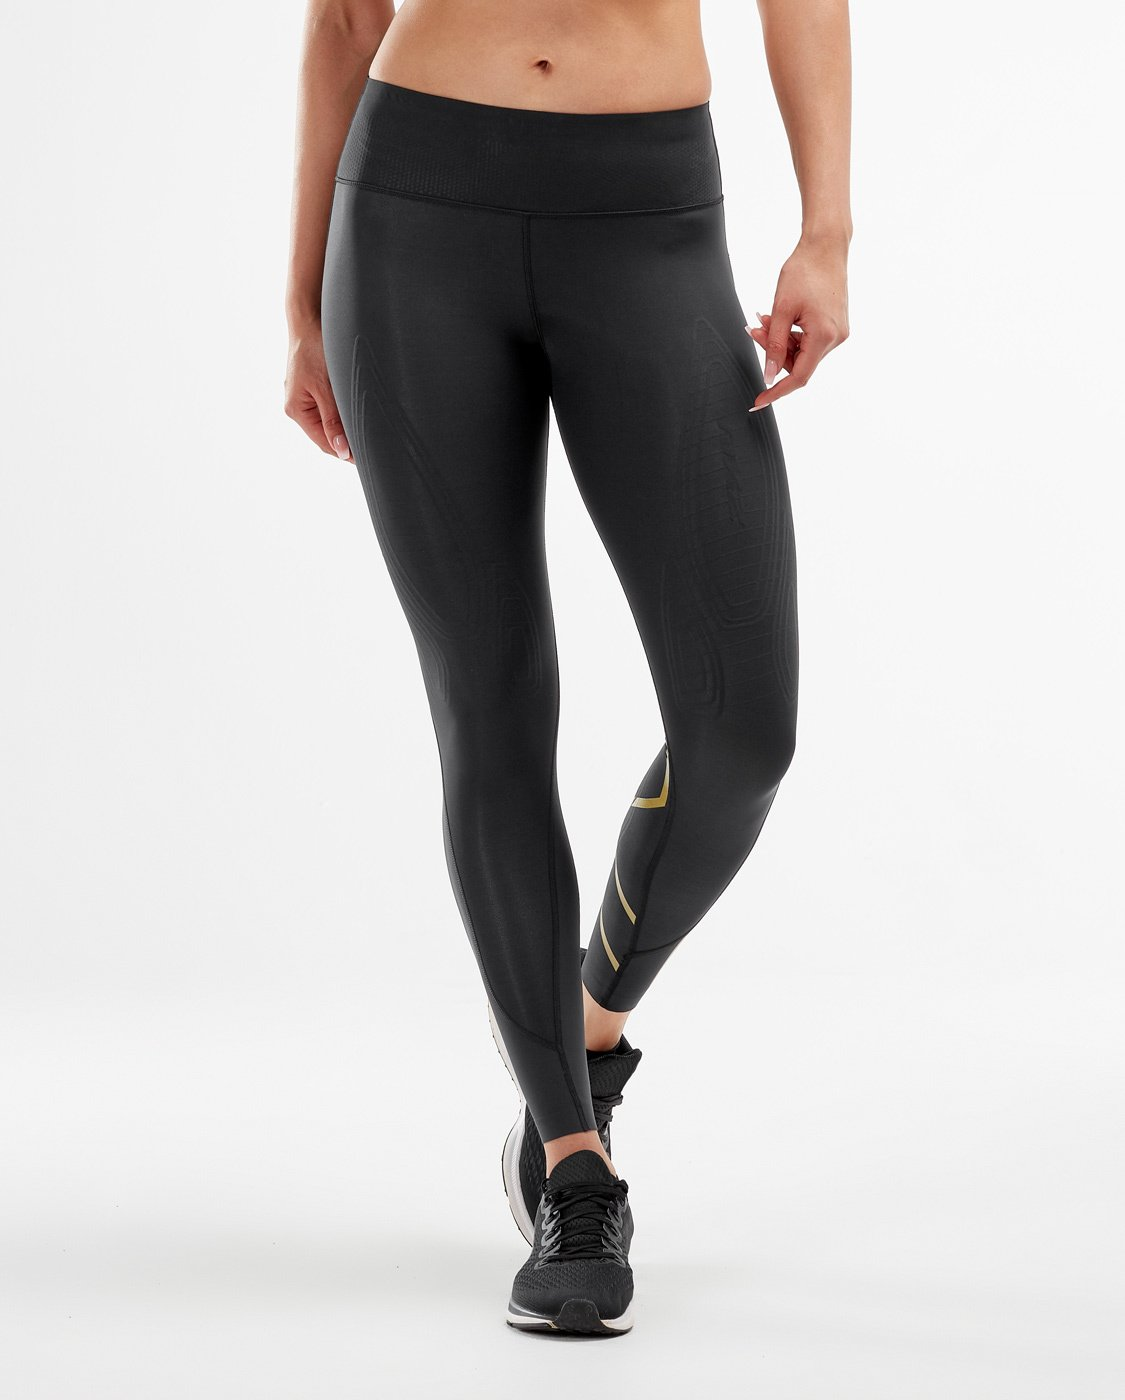 2XU Mcs X Train Mid Rise Tights